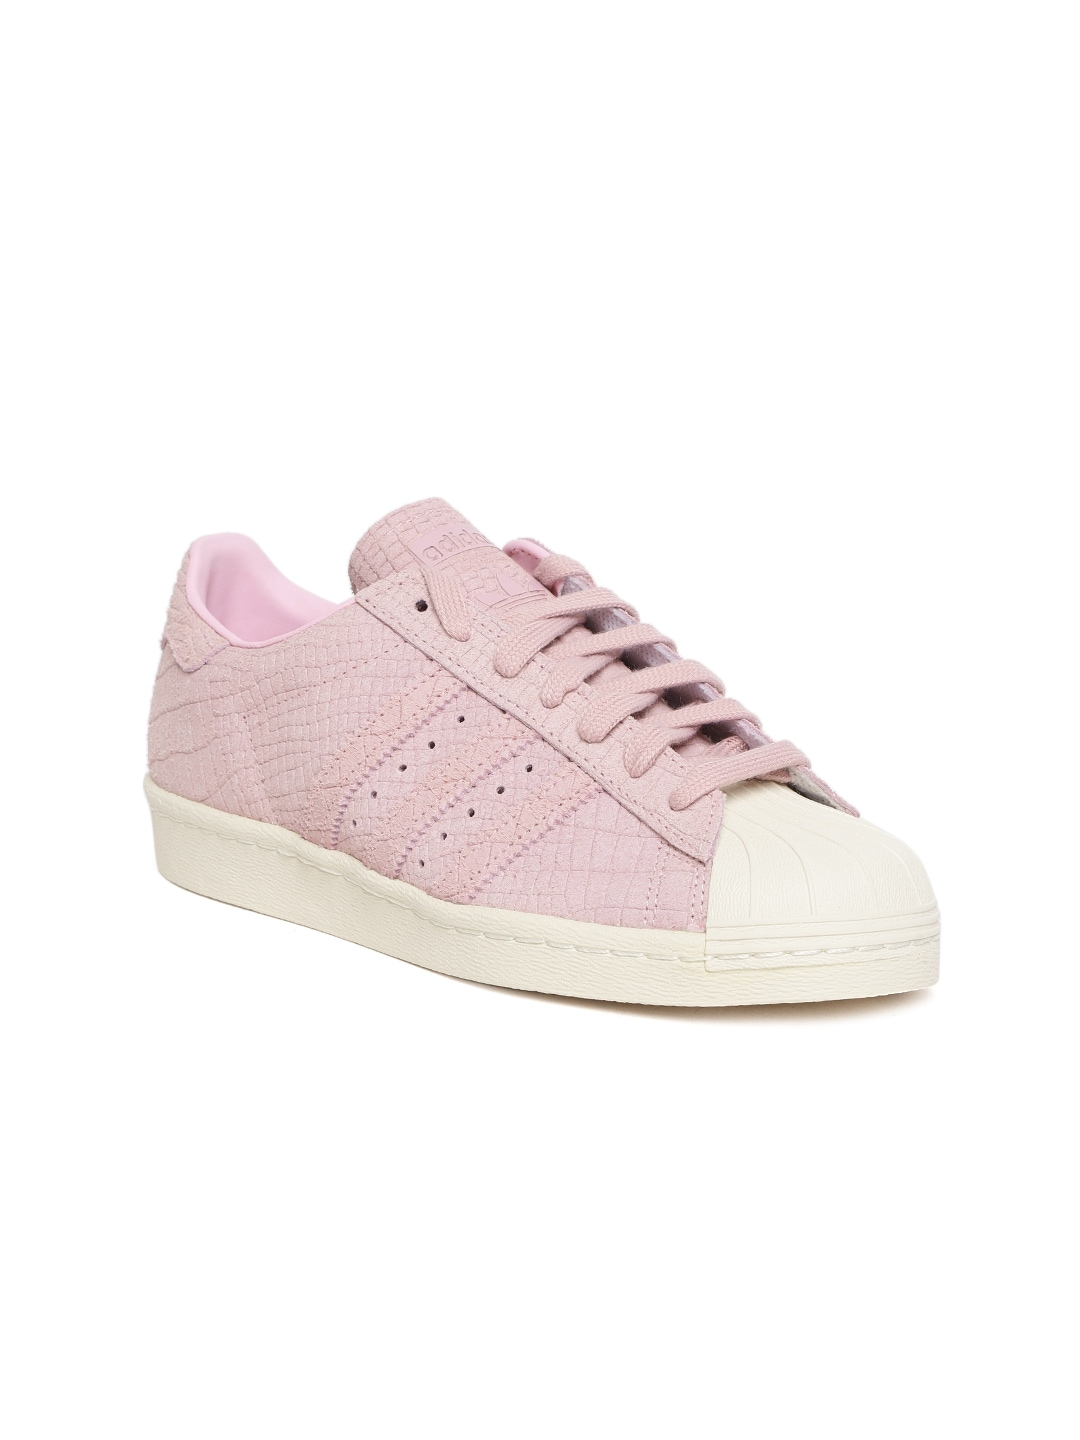 detailed pictures 6e038 f1f71 Adidas Superstar Shoes - Buy Adidas Superstar Shoes Online - Myntra